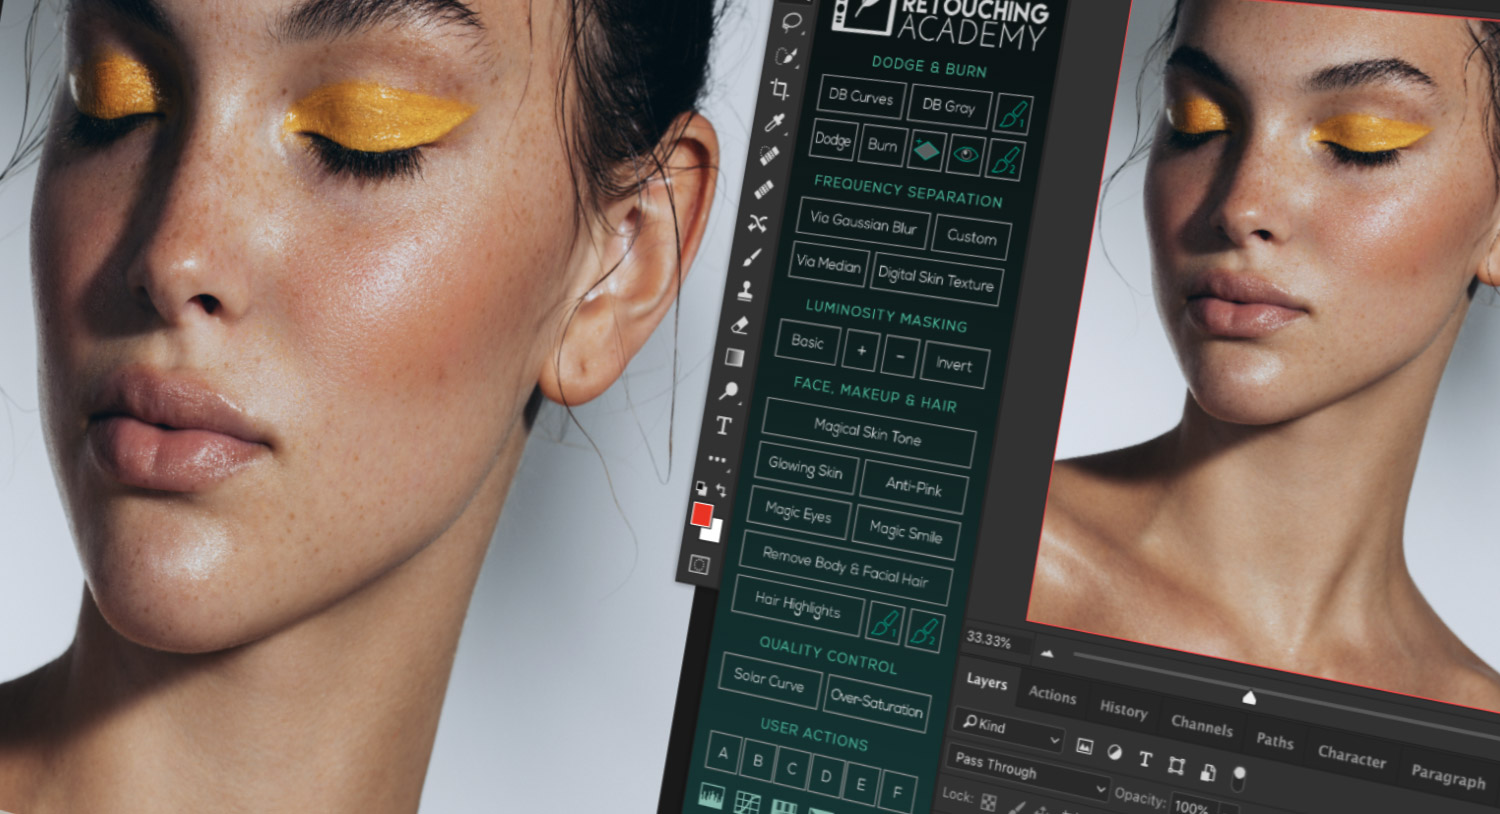 Beauty Retouch v3.3 Panel Update Beta Testing